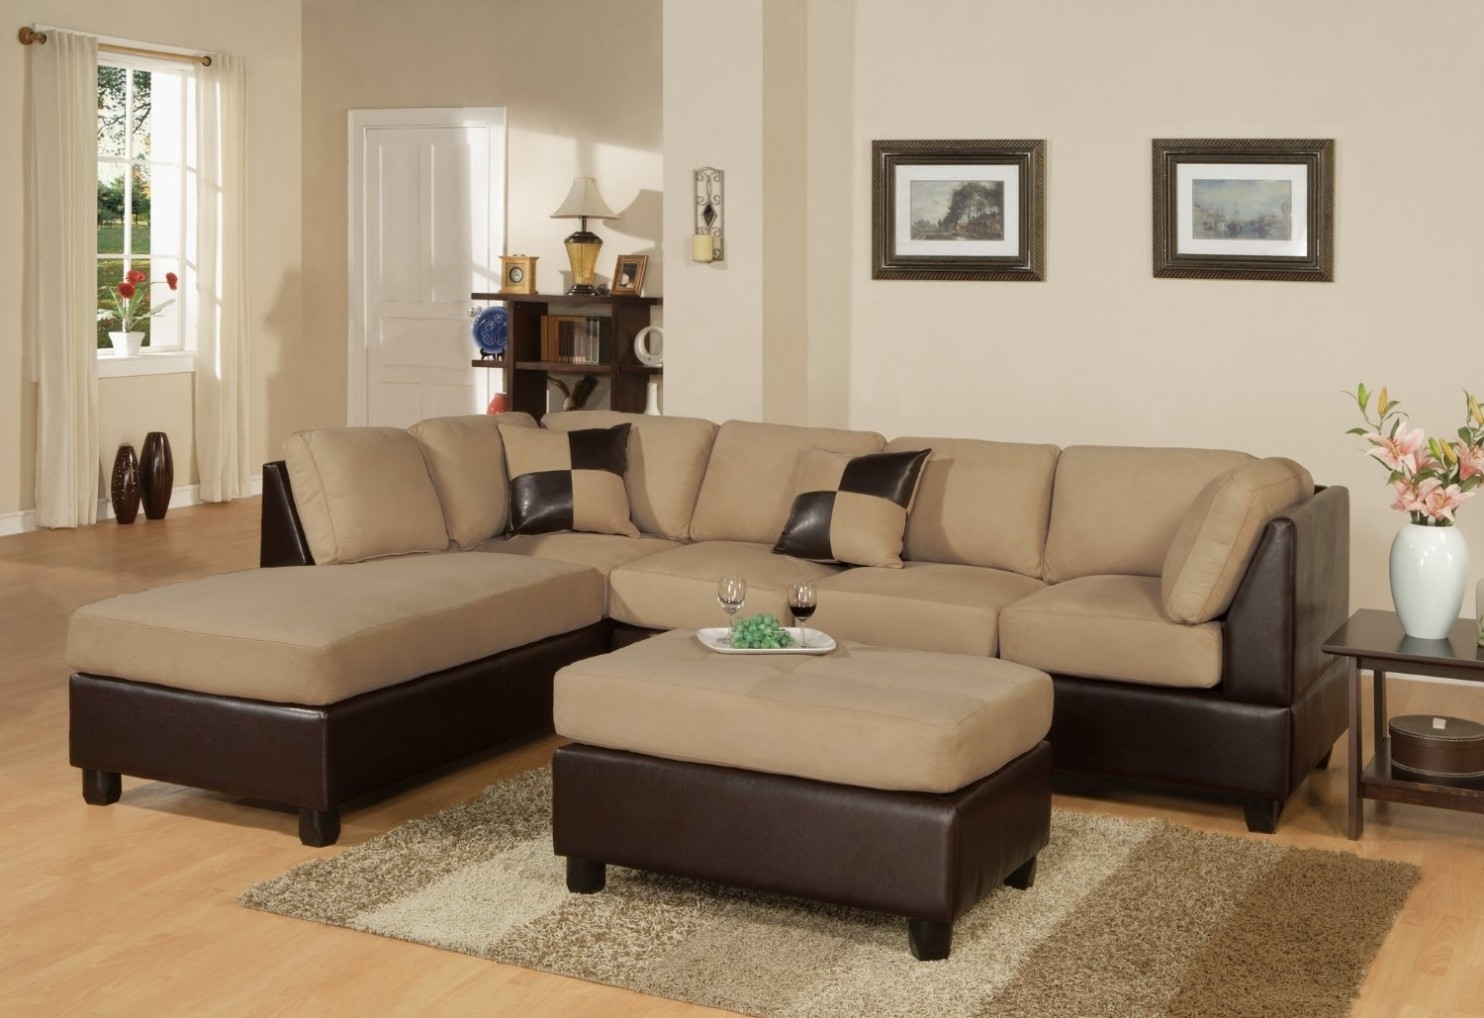 Product Reviews | Buy Chelsea Home Furniture Cupertino 3-Piece regarding Karen 3 Piece Sectionals (Image 19 of 30)